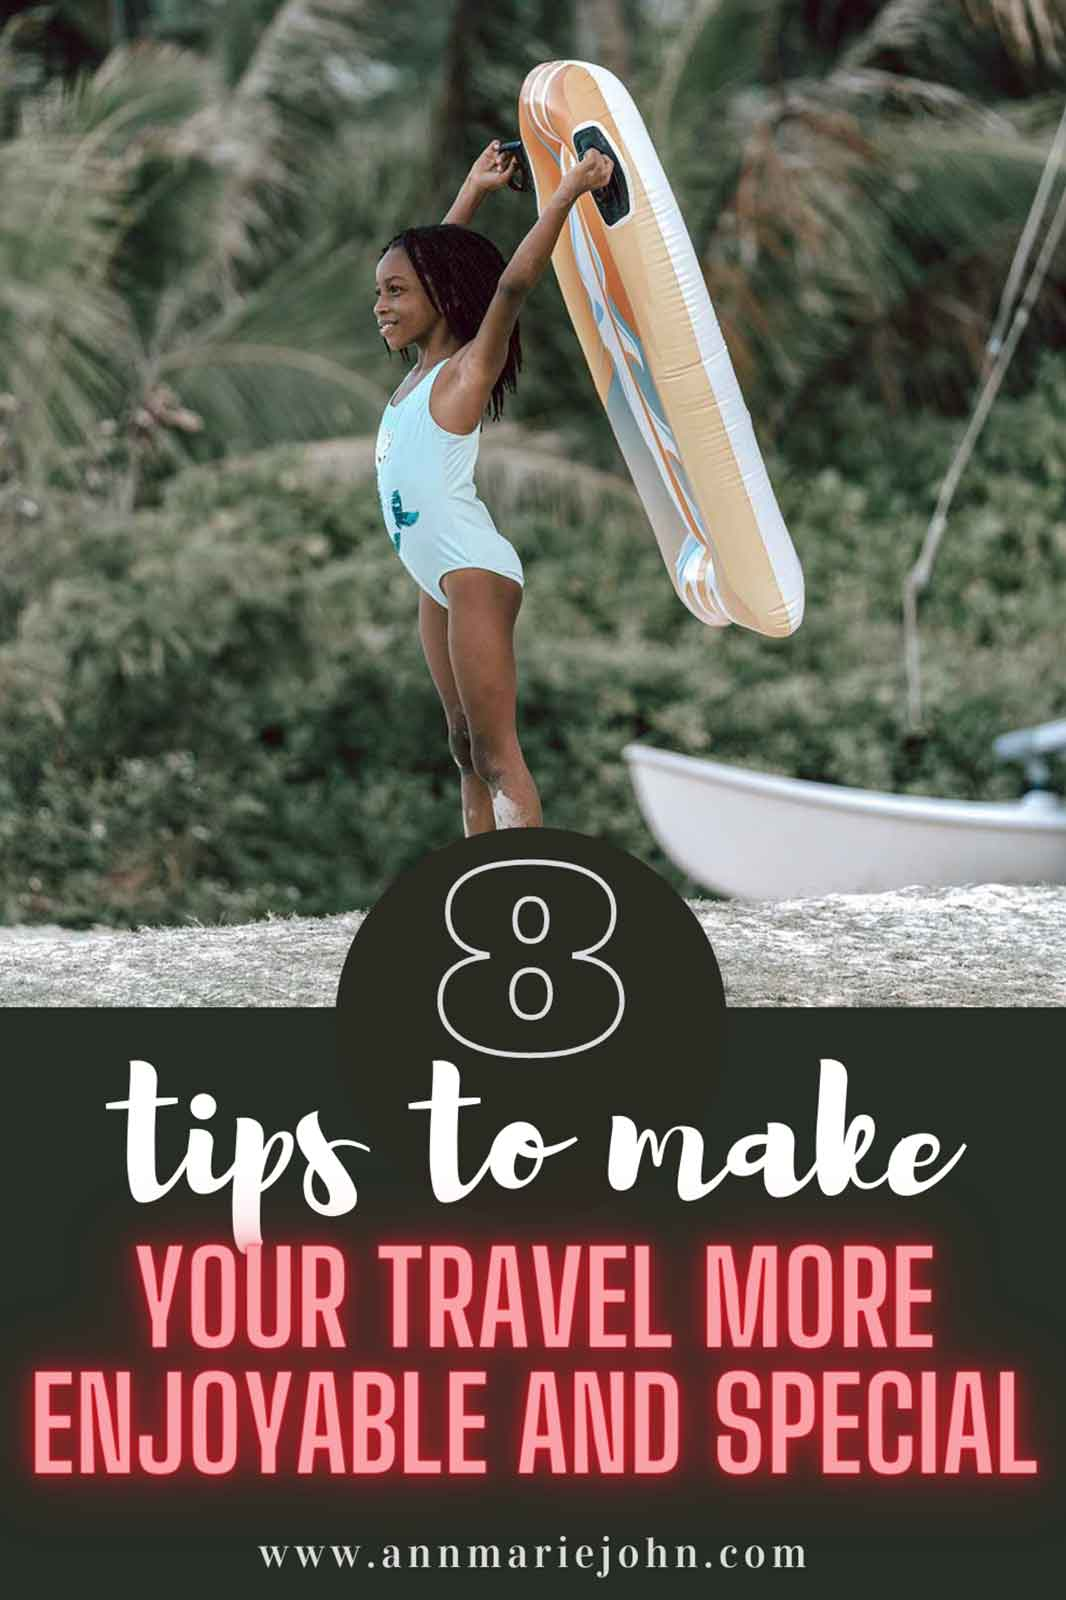 Tips to Make Your Travel More Enjoyable and Special